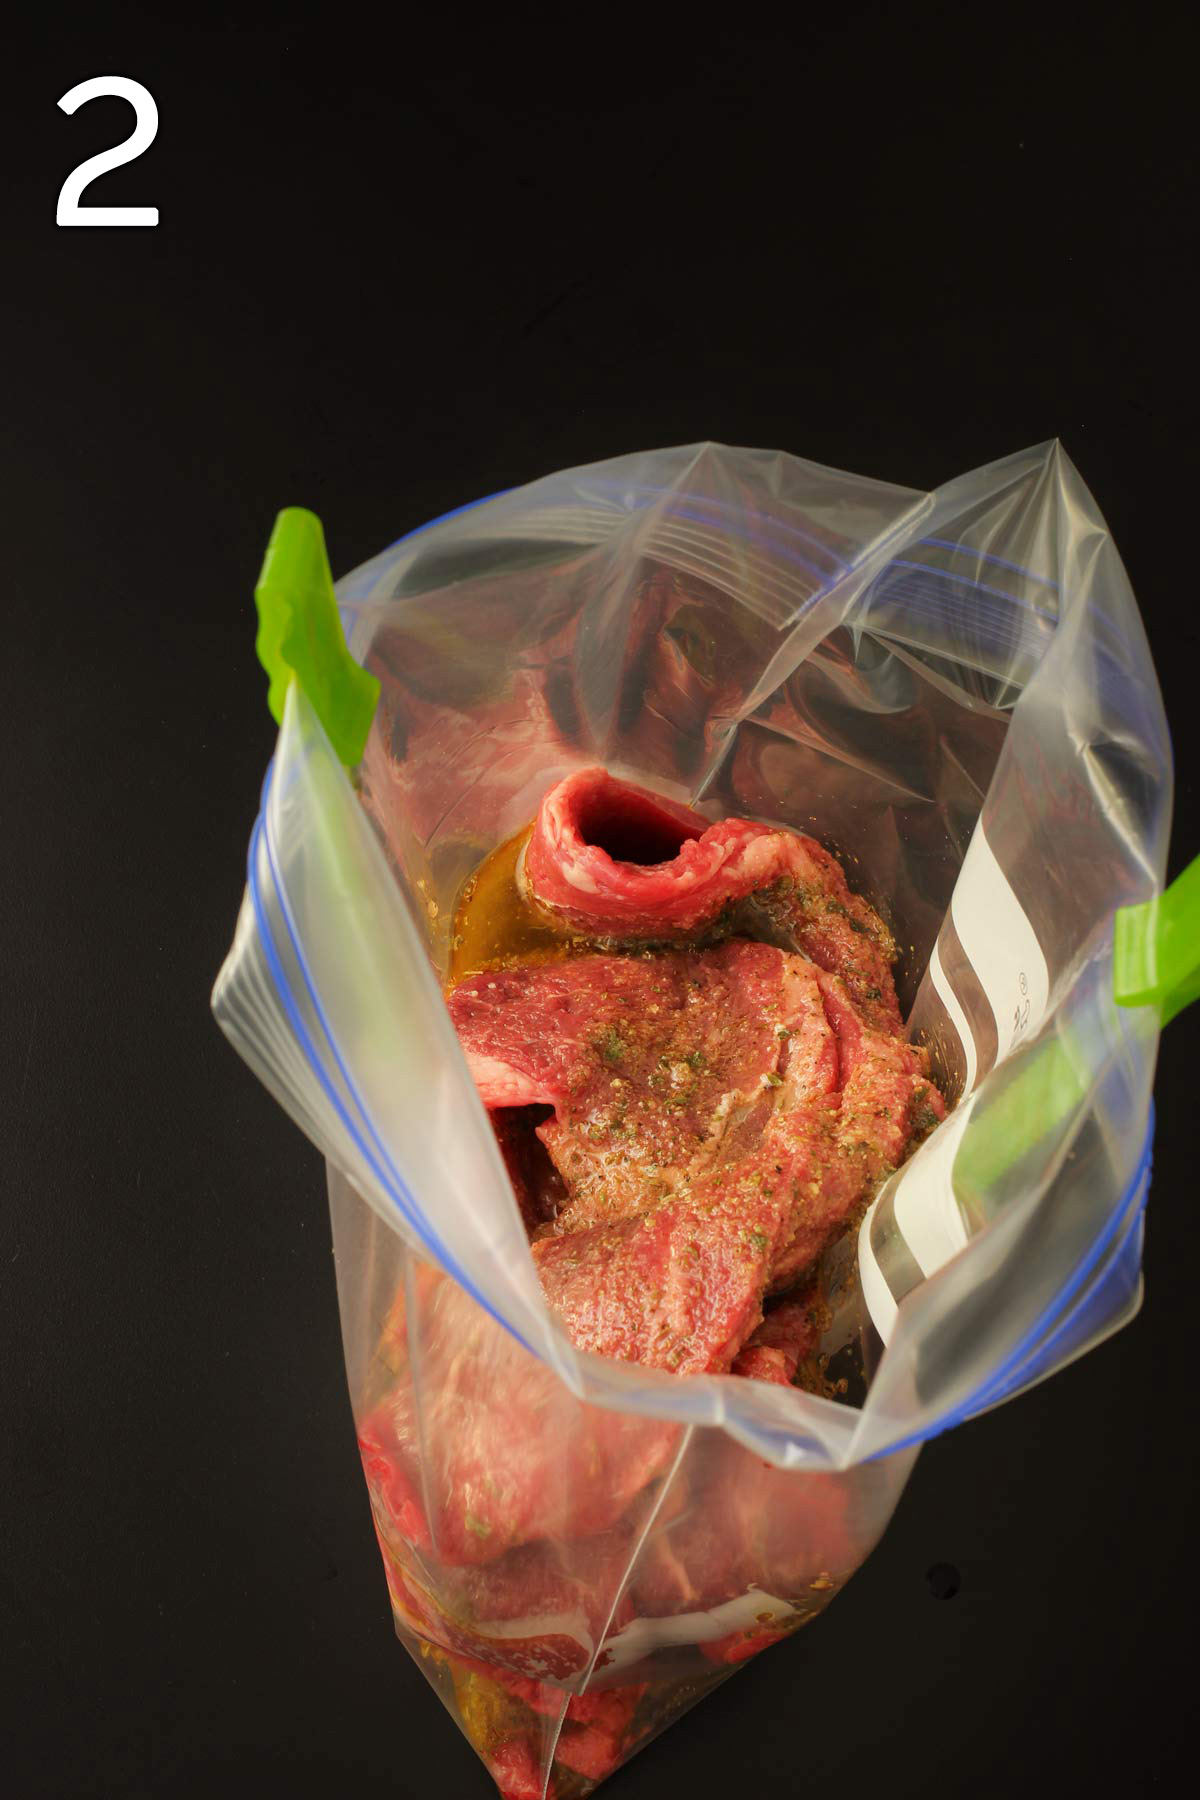 steak in freezer bag with greek marinade poured over it.